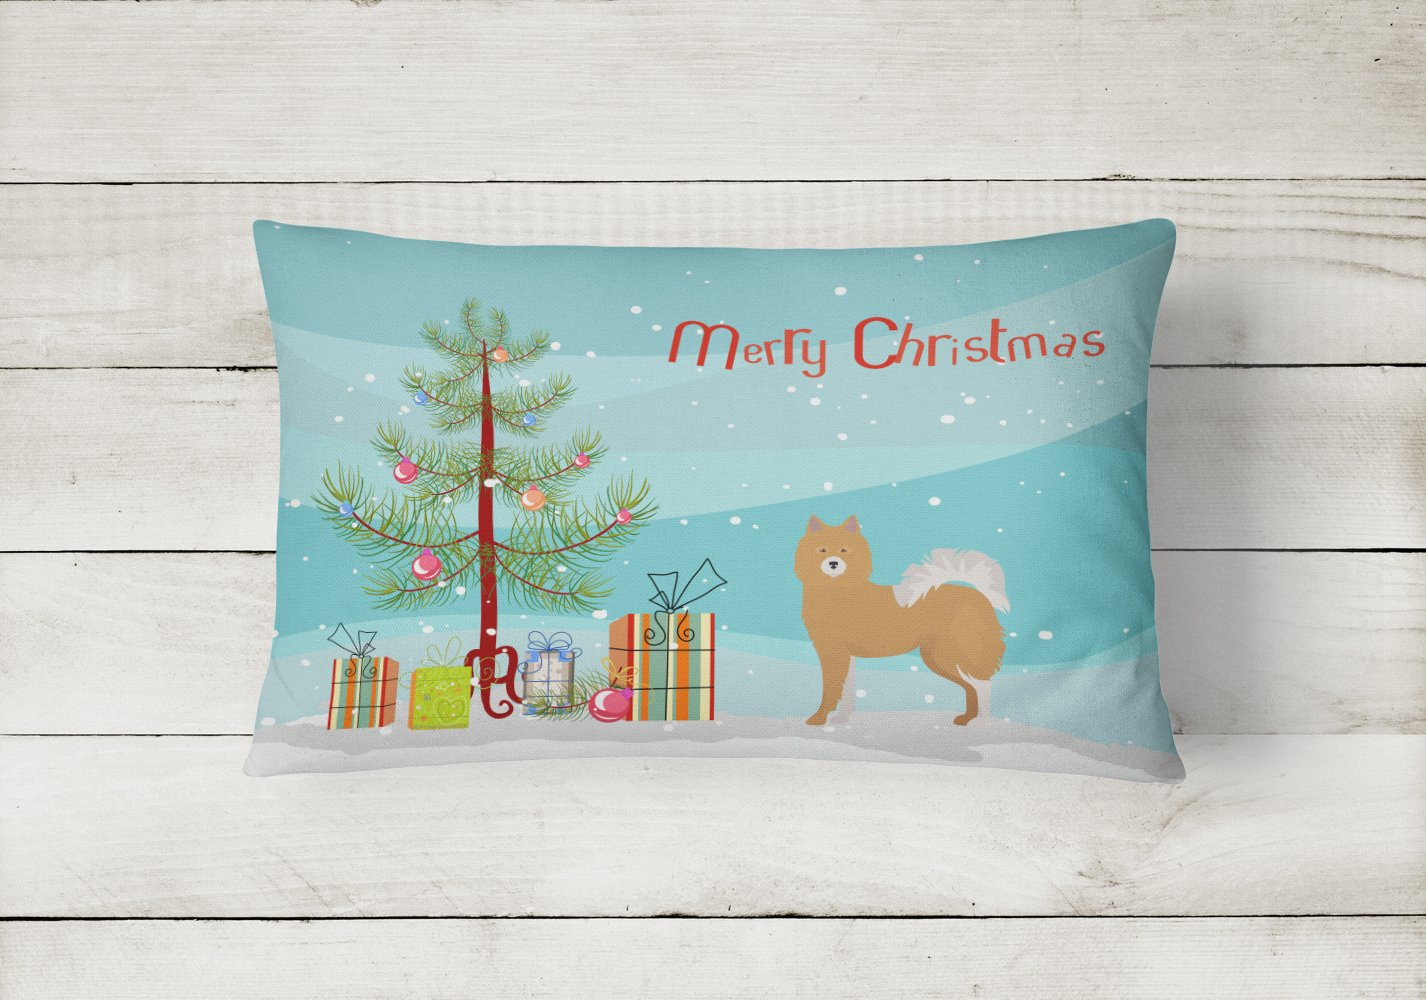 Brown & White Elo dog Christmas Tree Canvas Fabric Decorative Pillow CK3451PW1216 by Caroline's Treasures